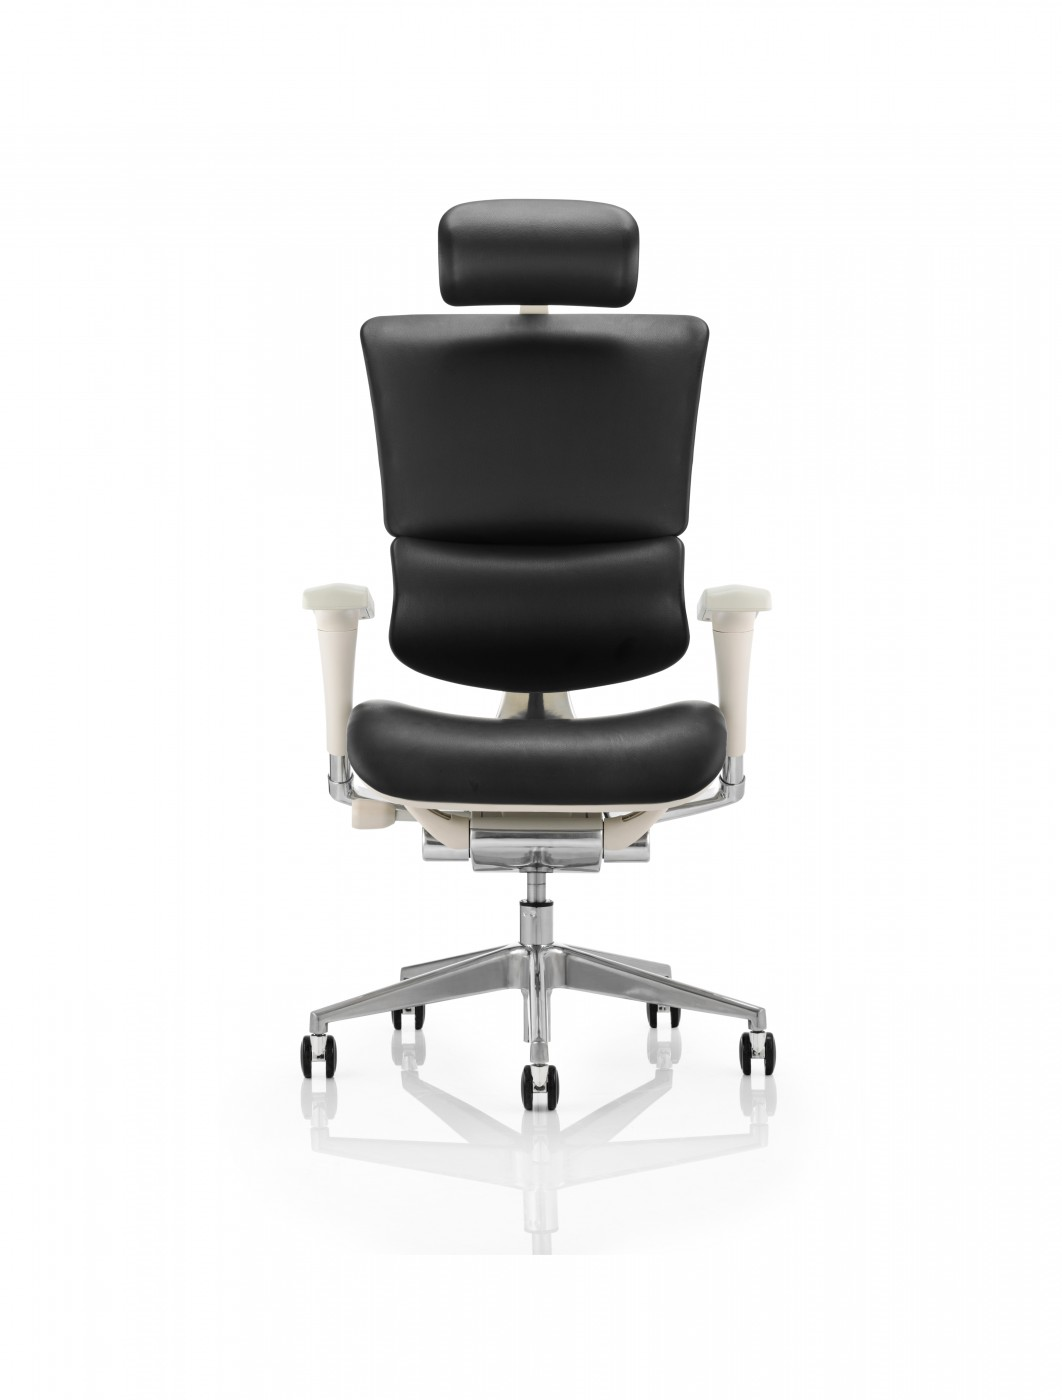 Ergo Dynamic Leather Office Chair EOHRGFBLTHR 121 Office Furniture